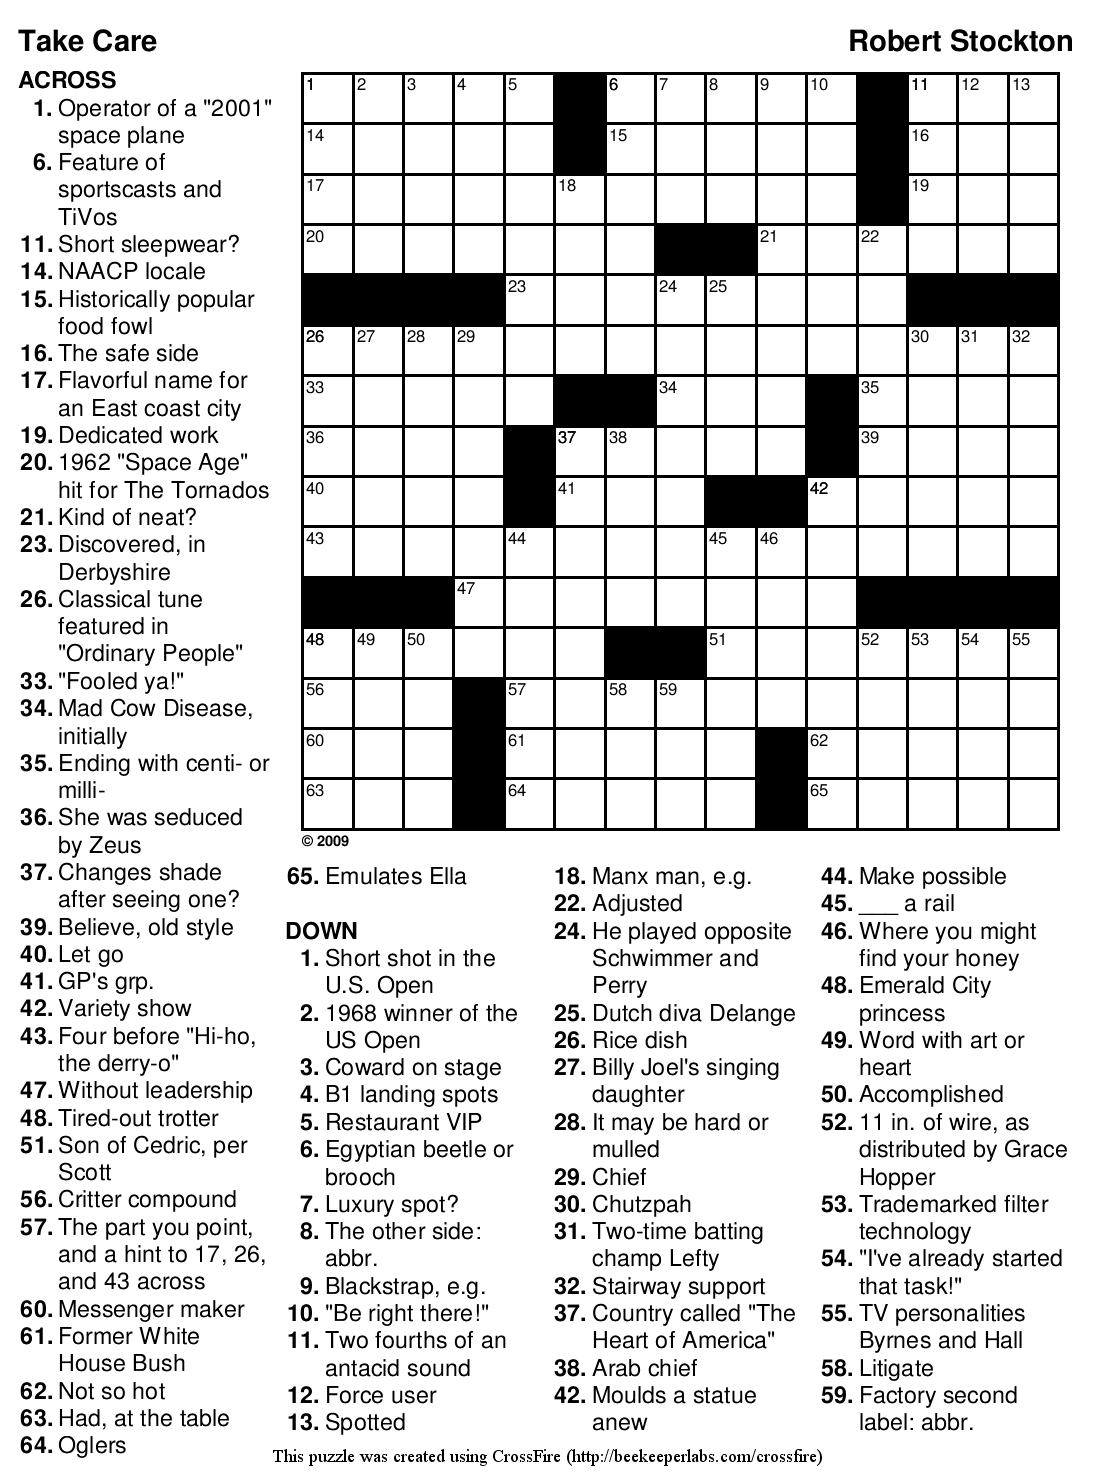 Printable Easy Sports Crossword Puzzles | Download Them Or Print - Printable Sports Crossword Puzzles For Adults